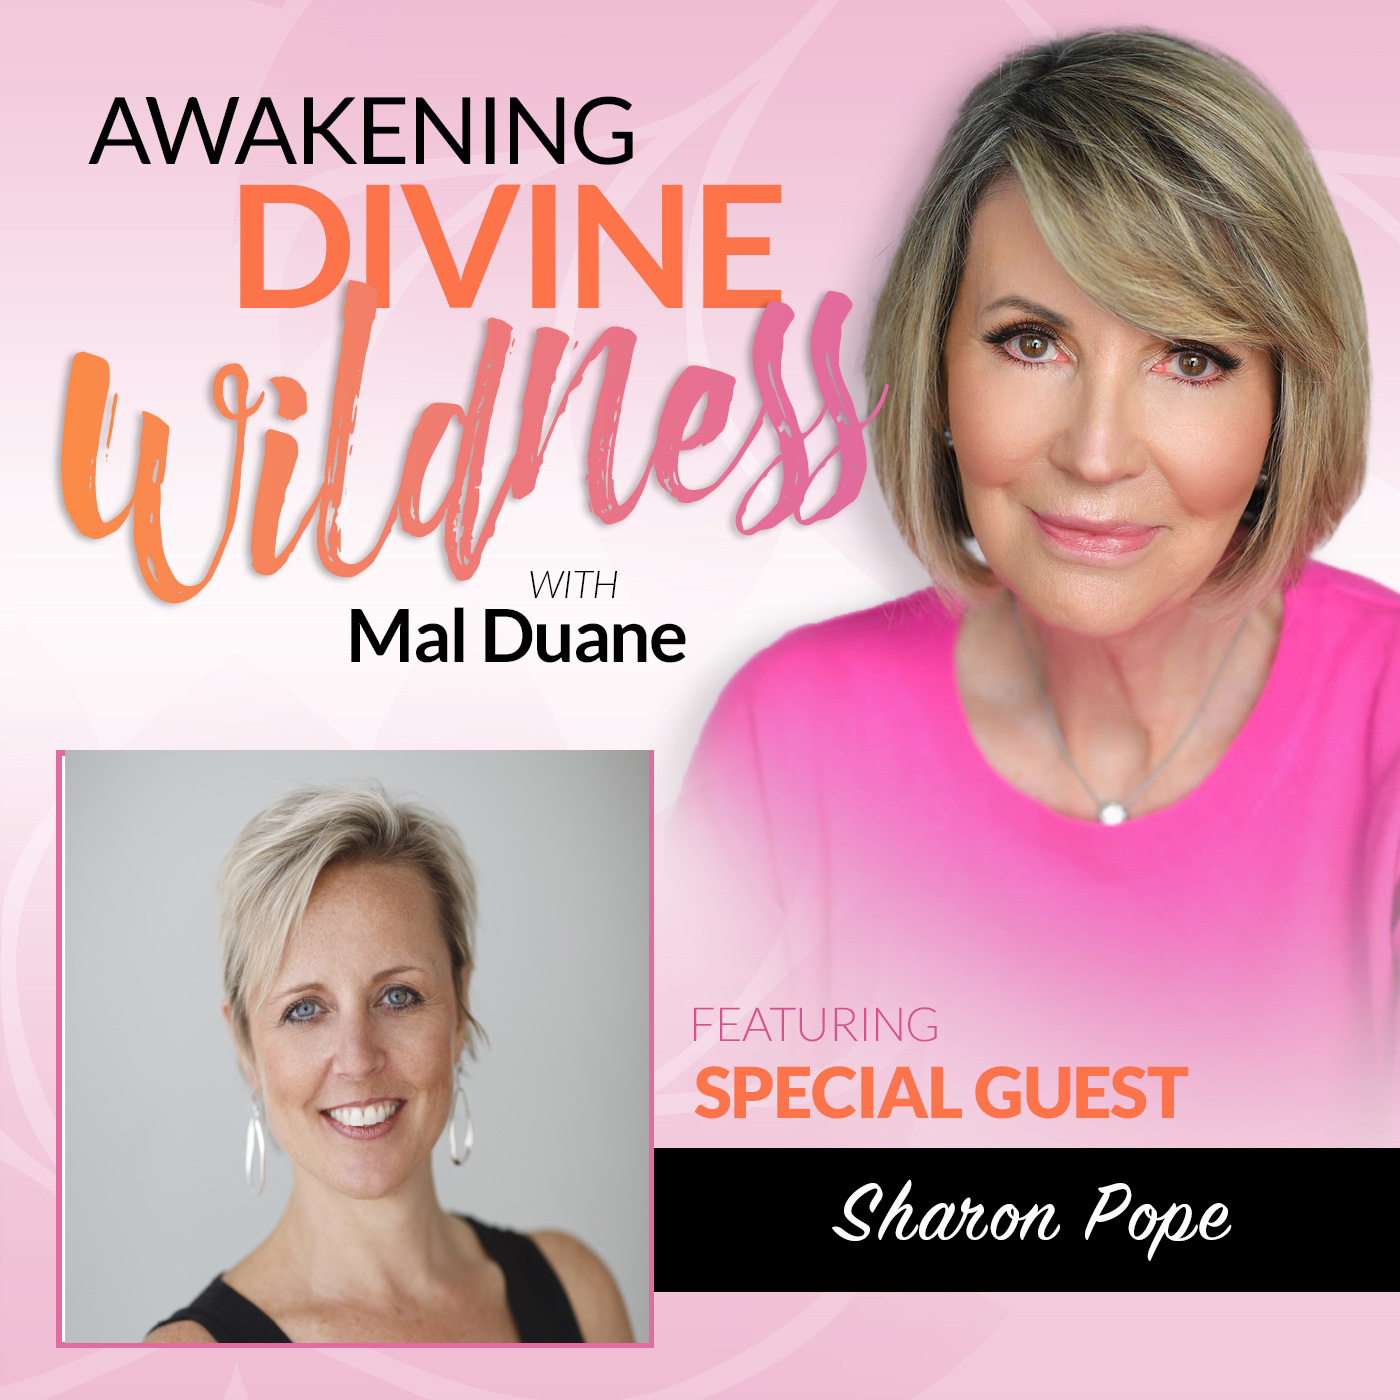 Meet Sharon Pope, Master Relationship Coach and Best Selling Author